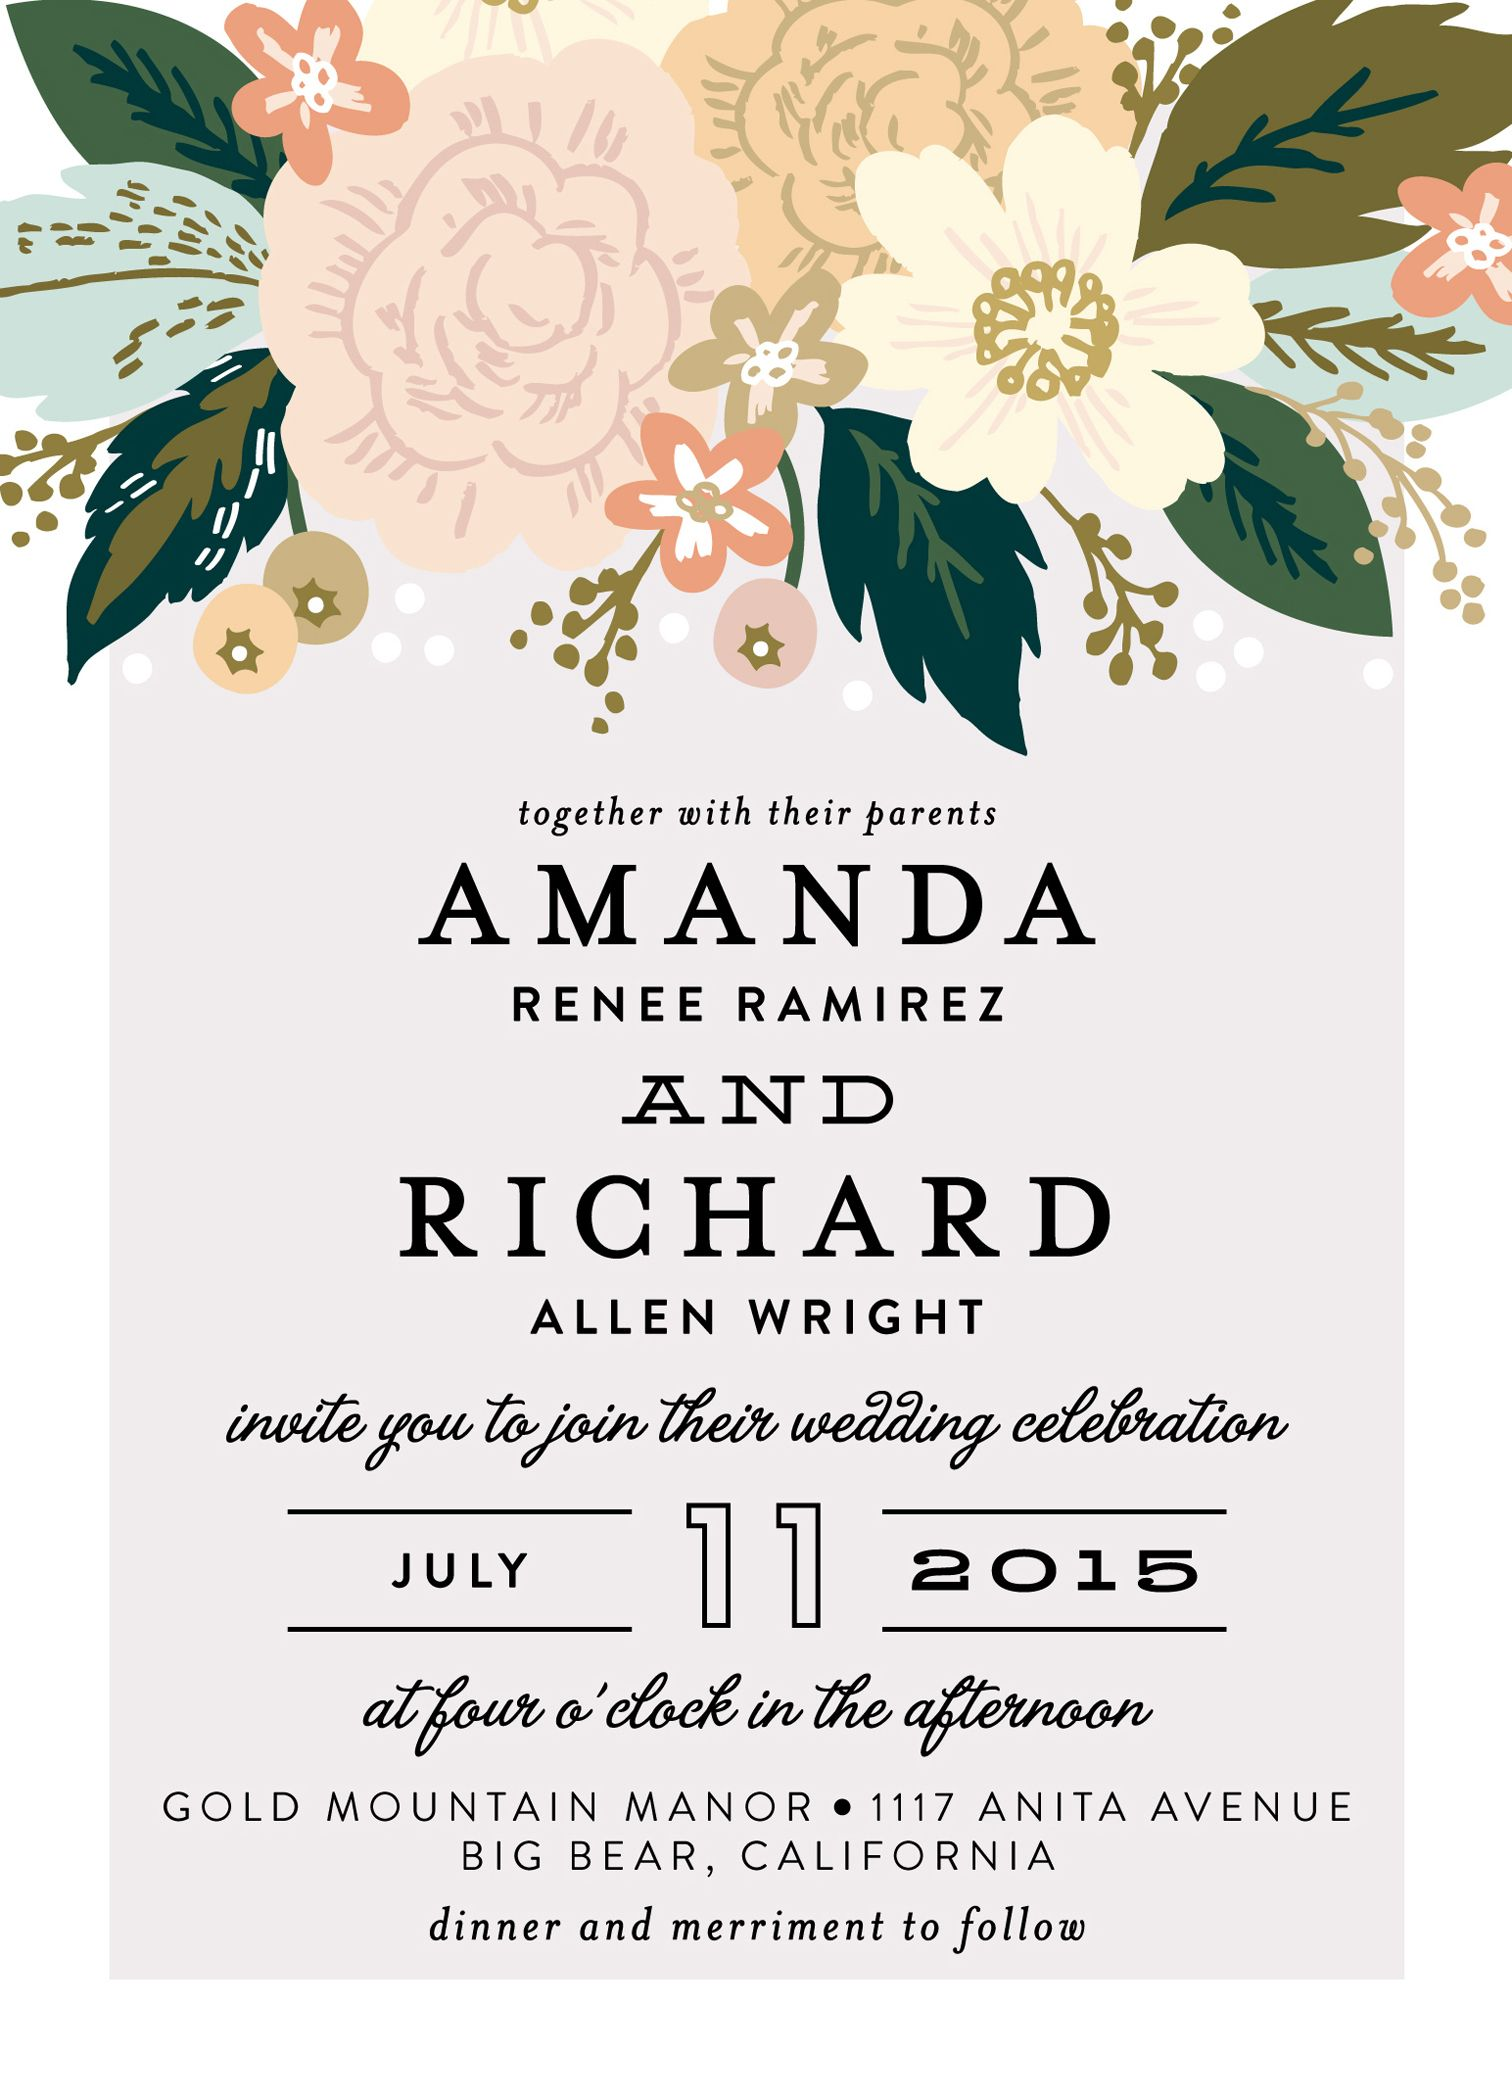 The Wedding Invitation Floral Blush Peach Green Wedding Decor